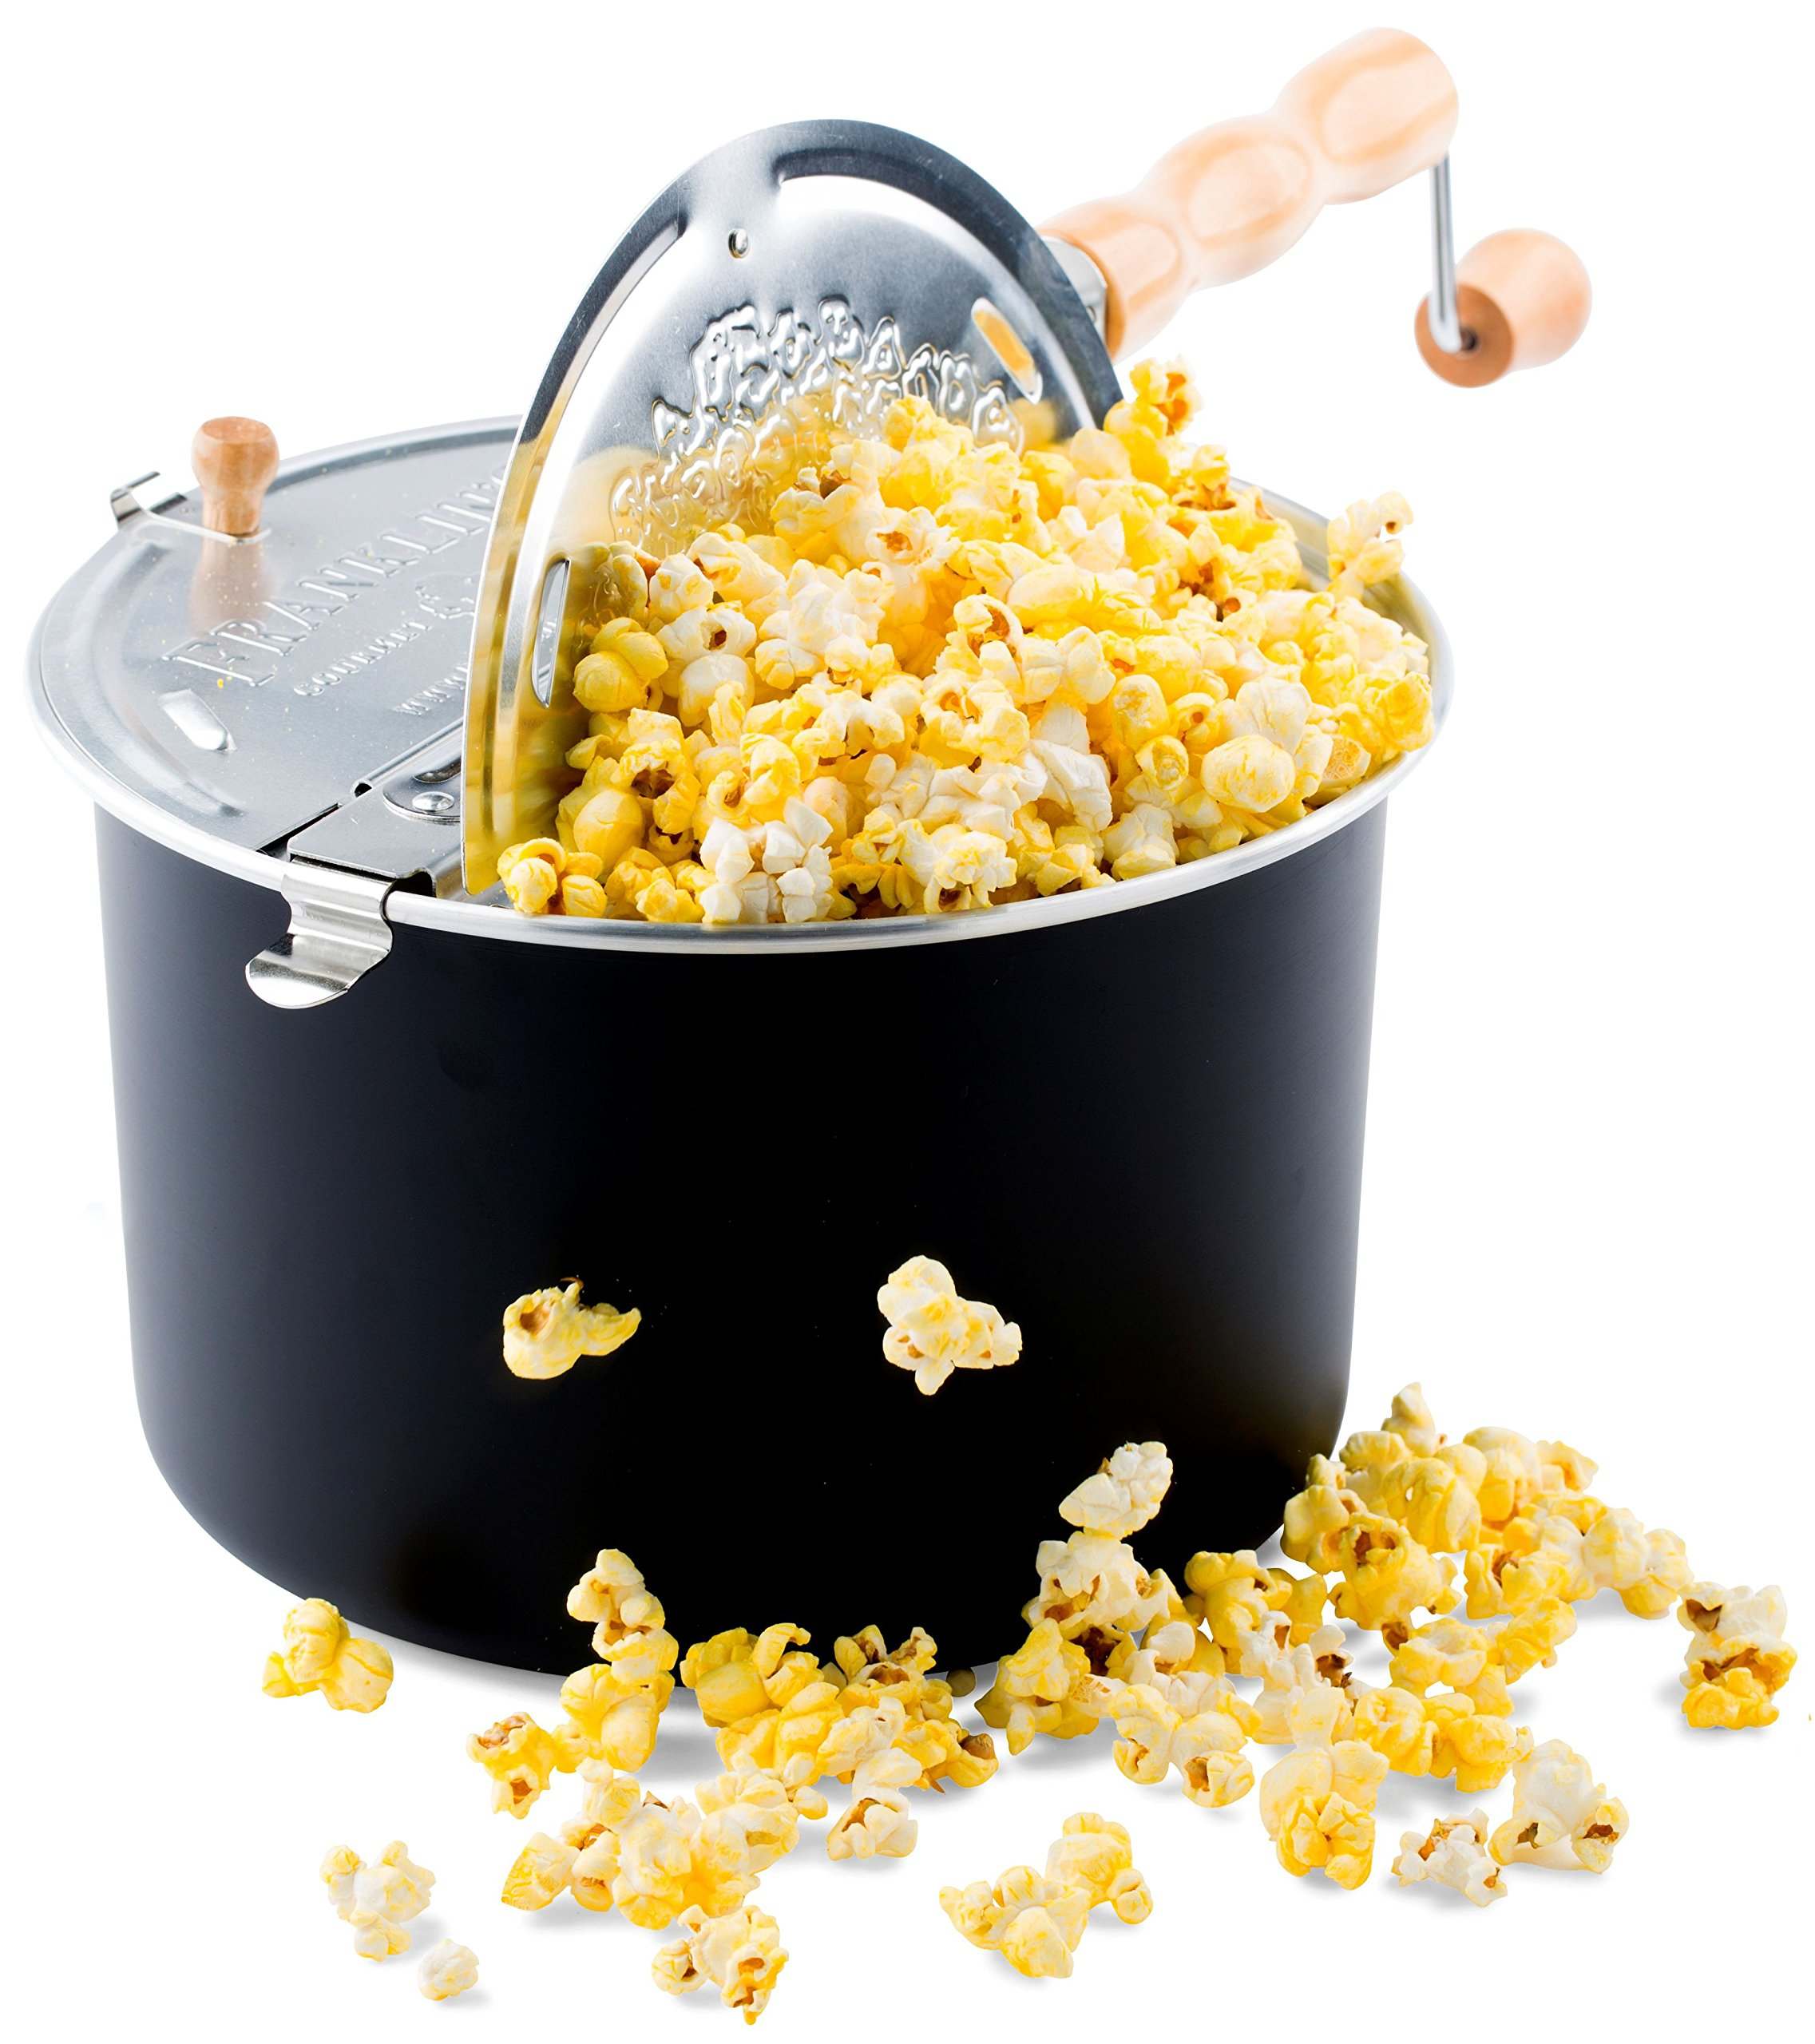 Franklin's Original Whirley Pop Stovetop Popcorn Machine Popper. Delicious & Healthy Movie Theater Popcorn Maker. FREE Organic Popcorn Kit. Makes Popcorn Just Like the Movies. by Franklin's Gourmet Popcorn